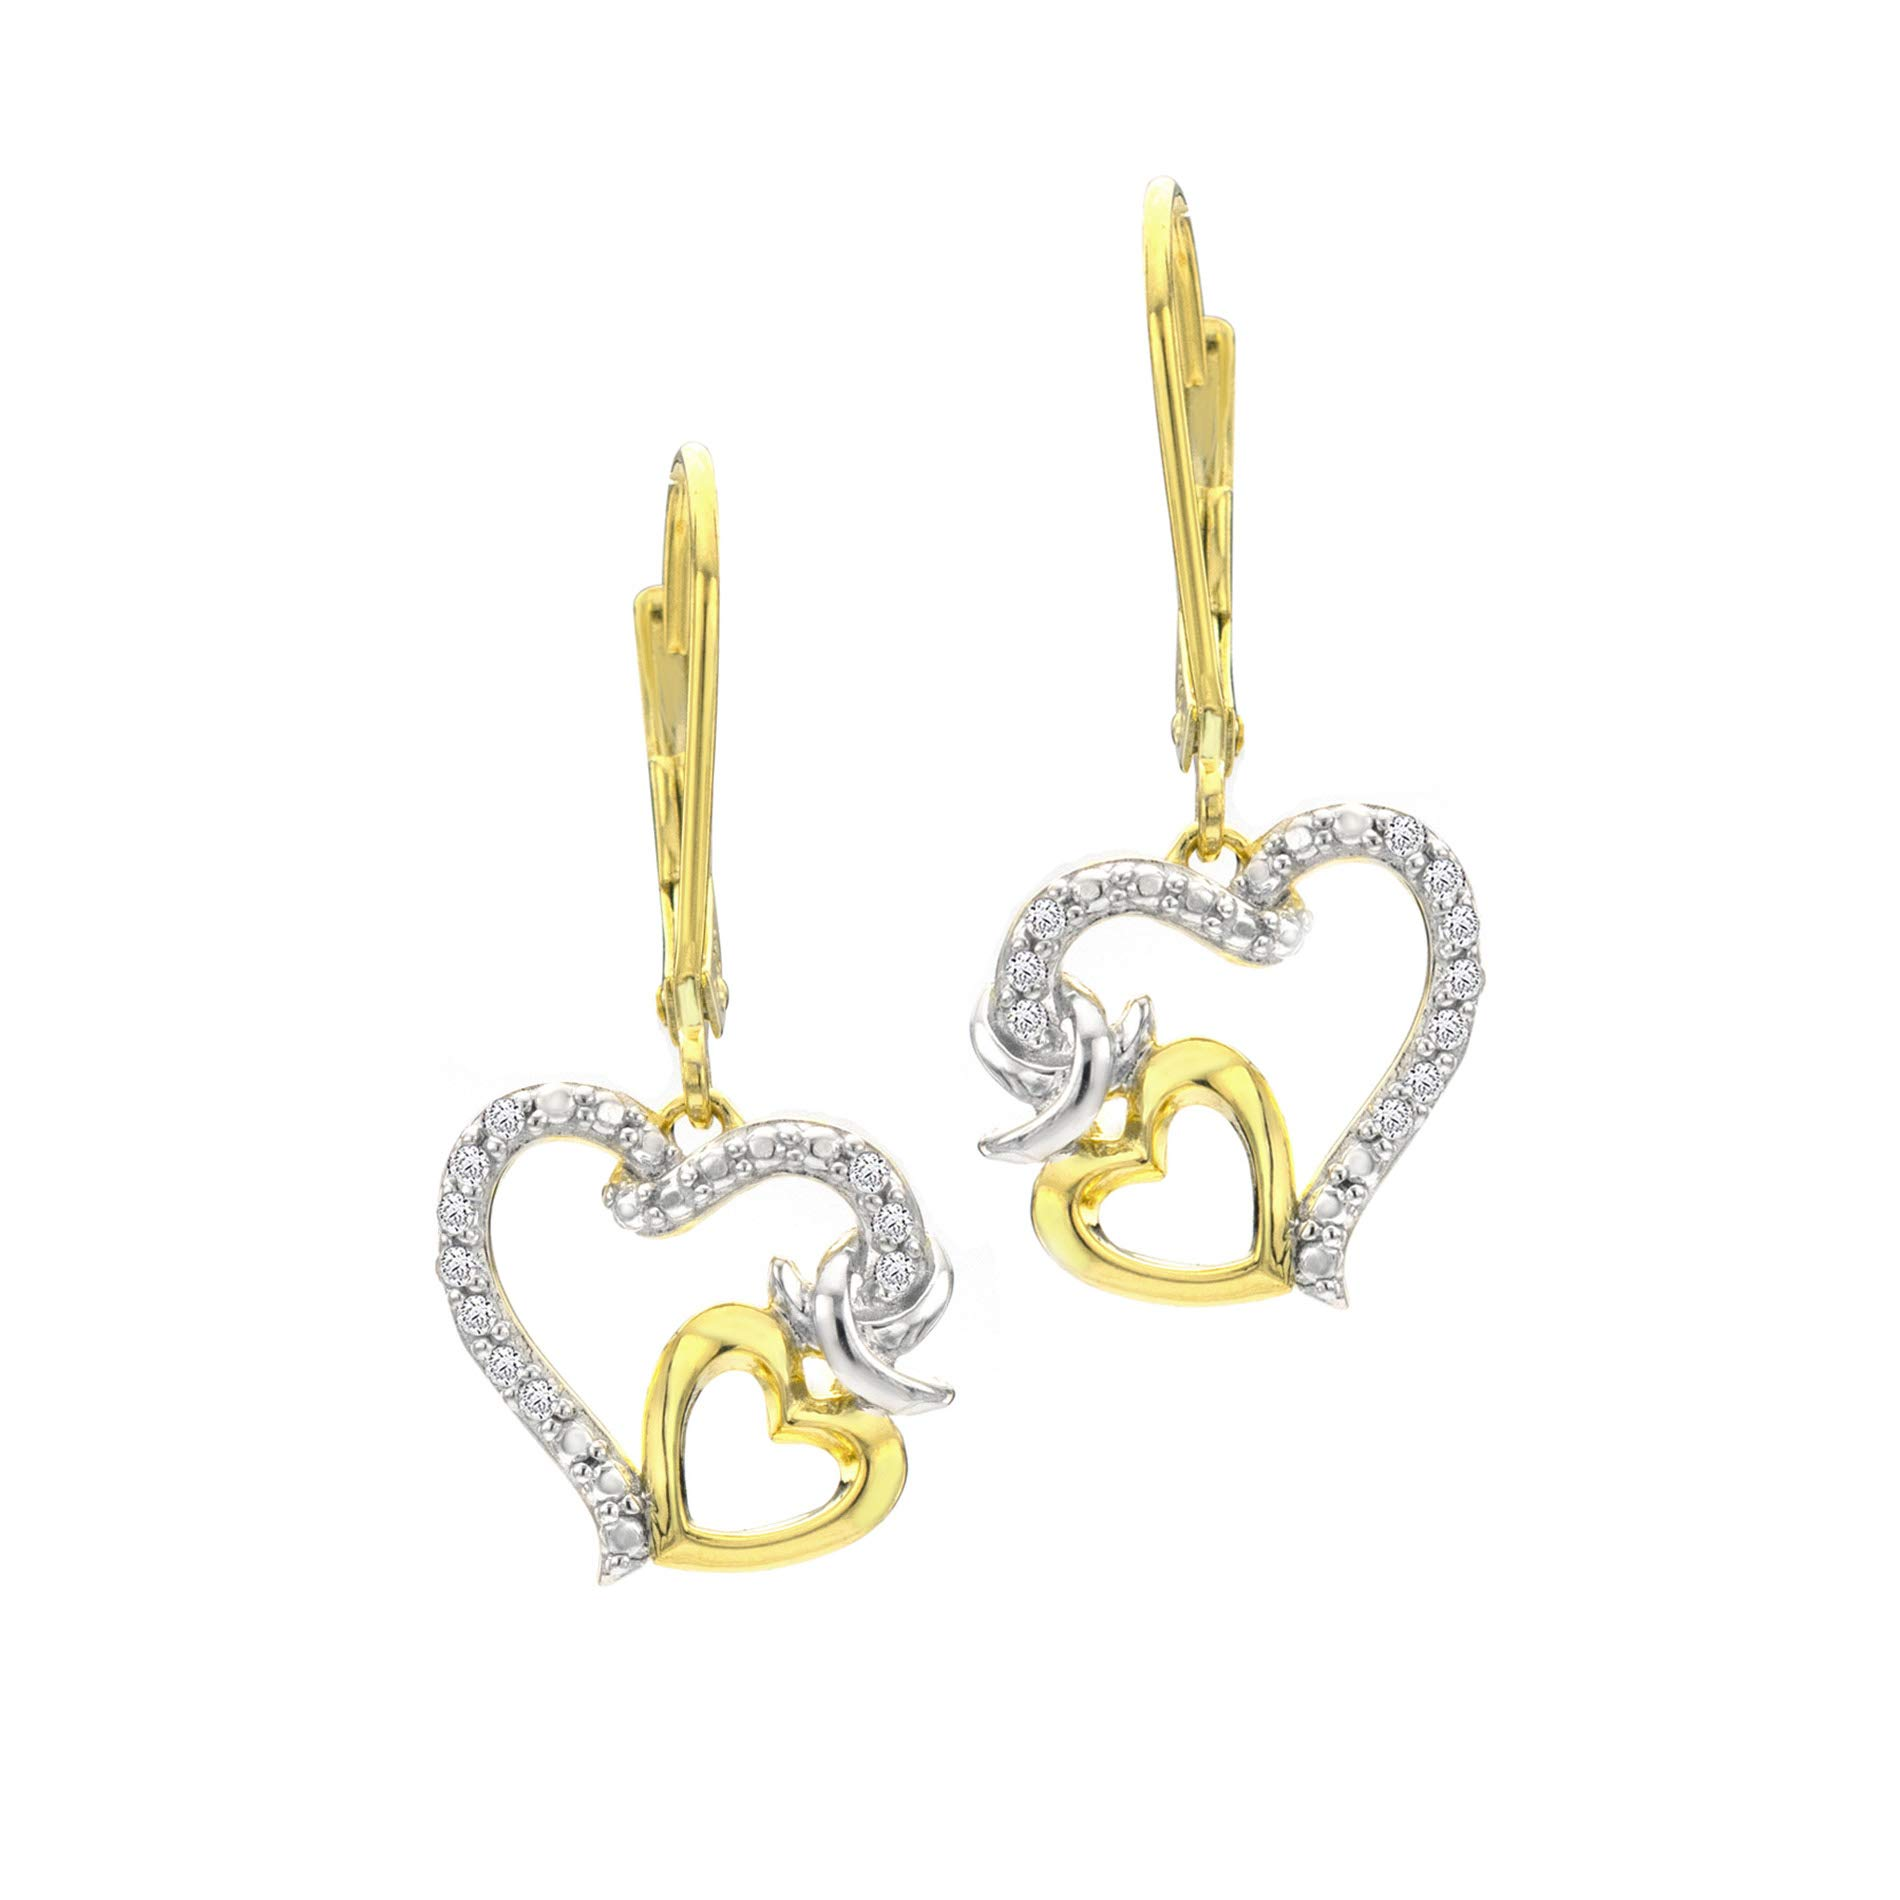 BLOWOUT SALE City of Hope 14K Yellow Gold Plated Sterling Silver Diamond Dangle Heart Earrings - 1/10 cttw